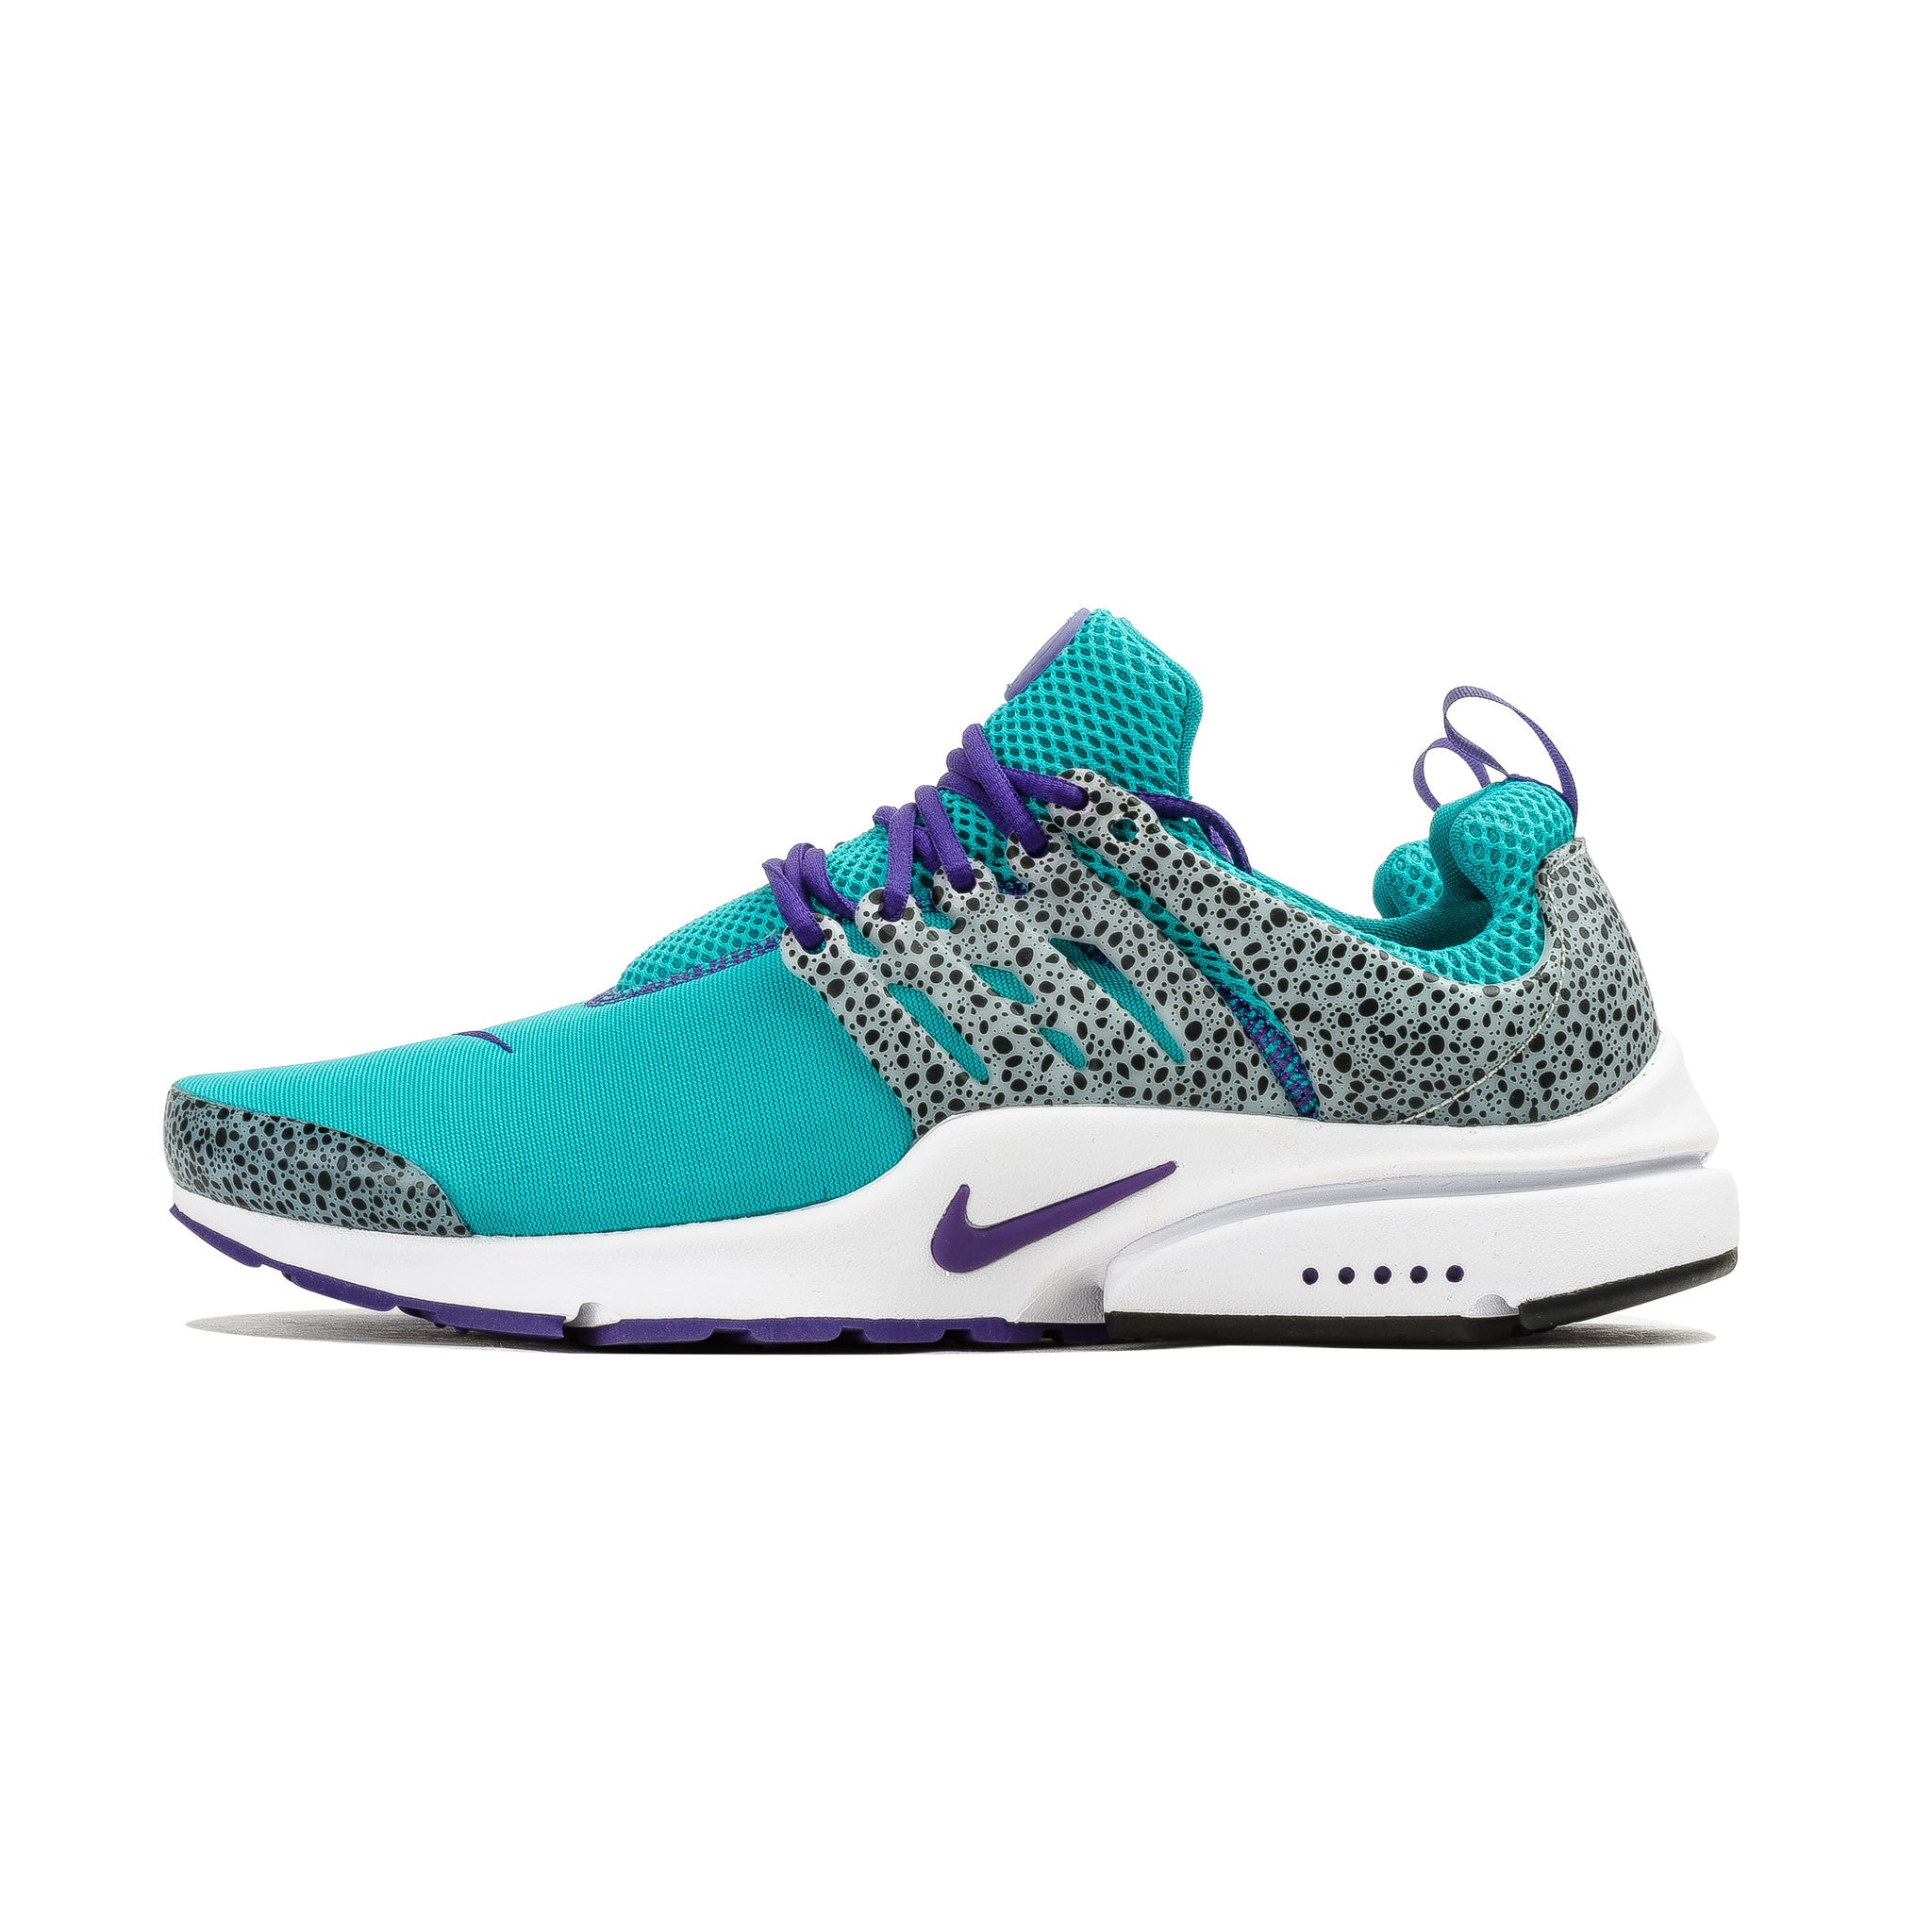 Air Presto QS 886043-300 Green Safari